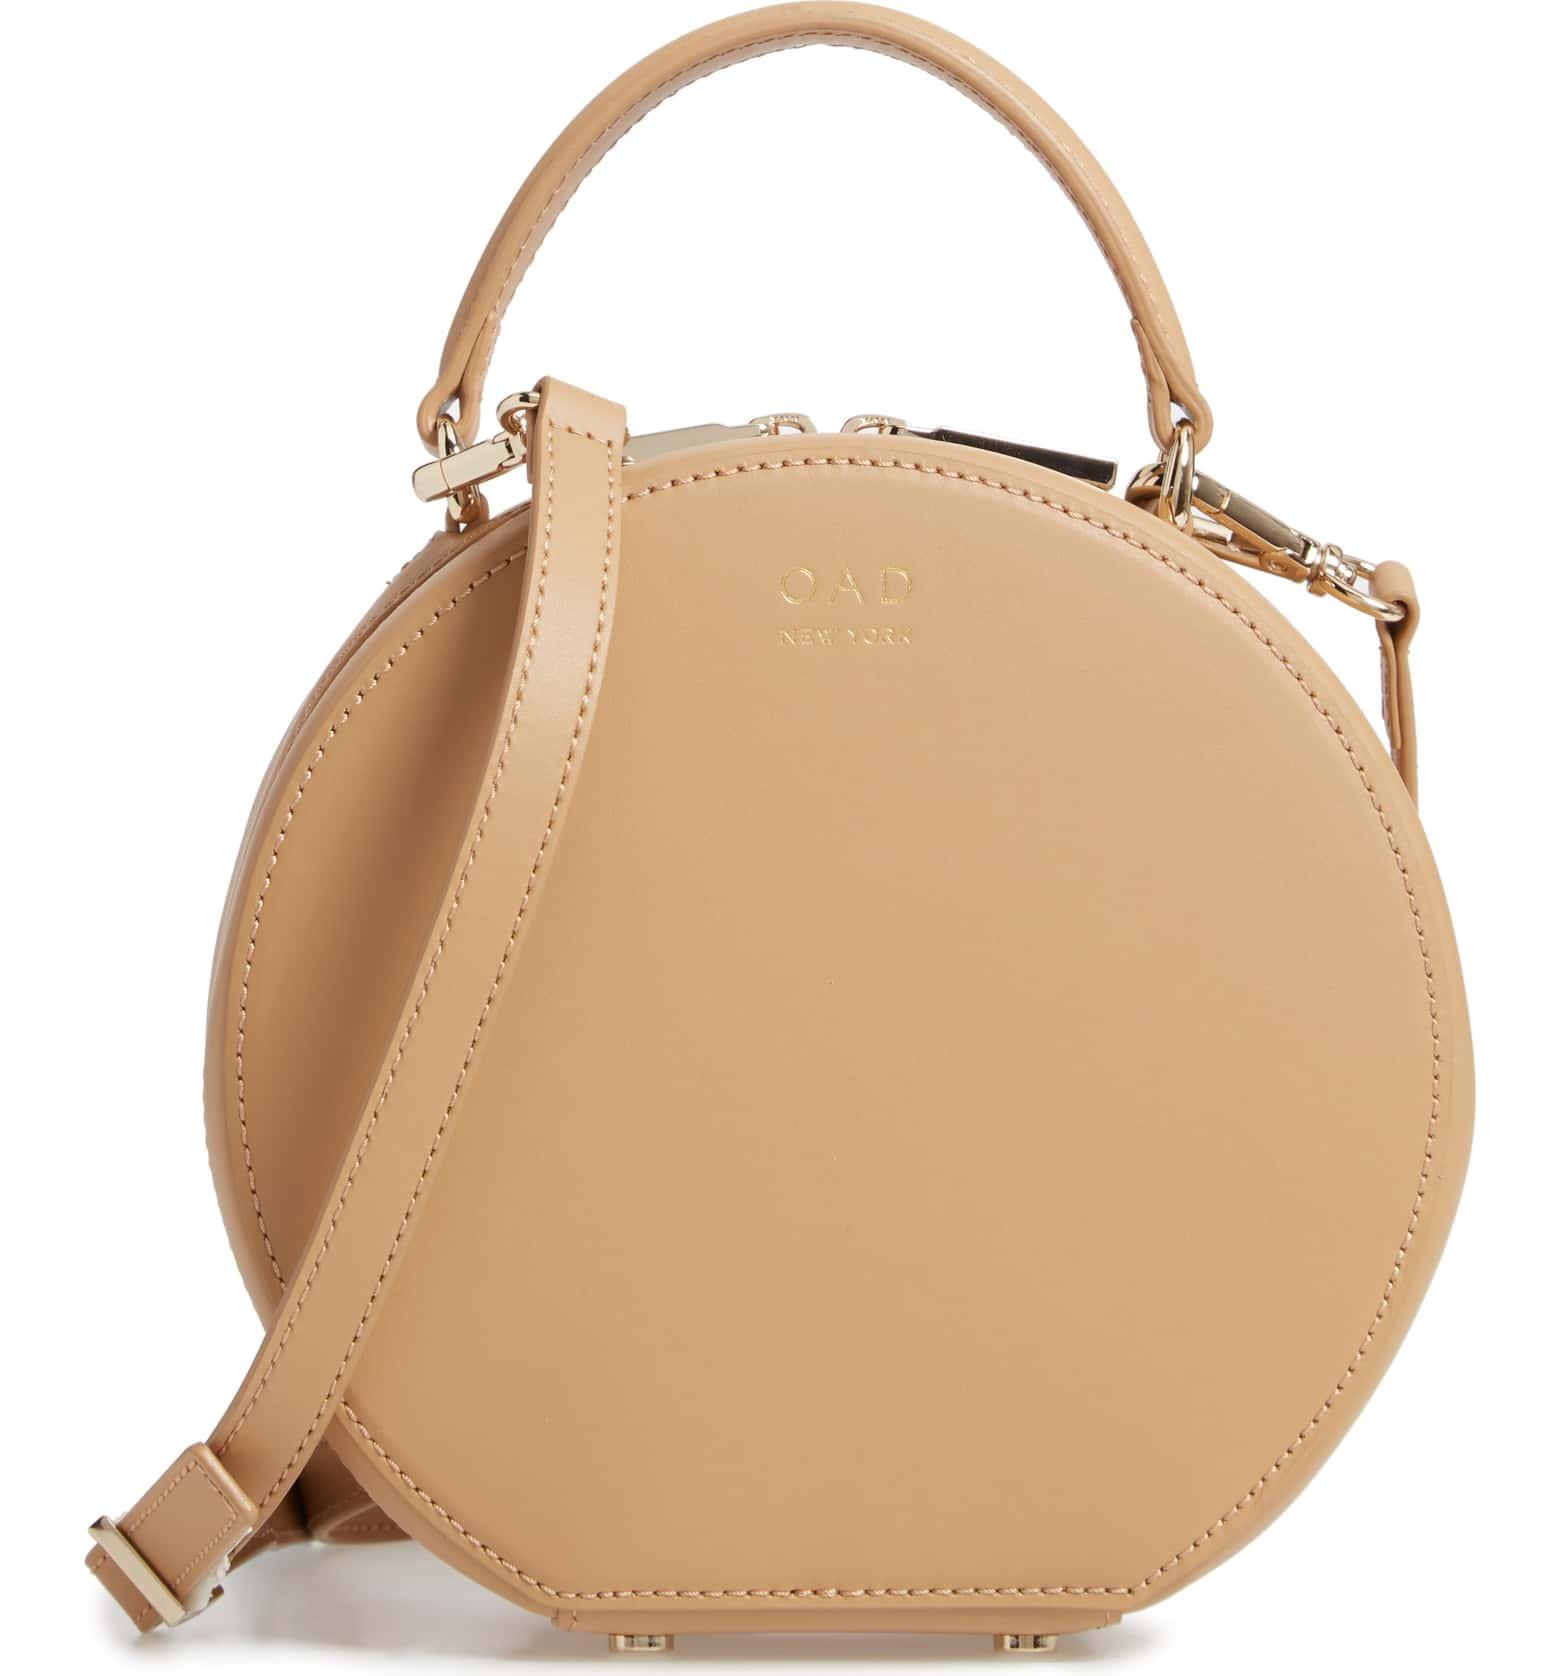 6362a6397 The OAD Mini Circle Bag | Best Round Bags for Spring 2019 |  CoffeeAndHandbags.com